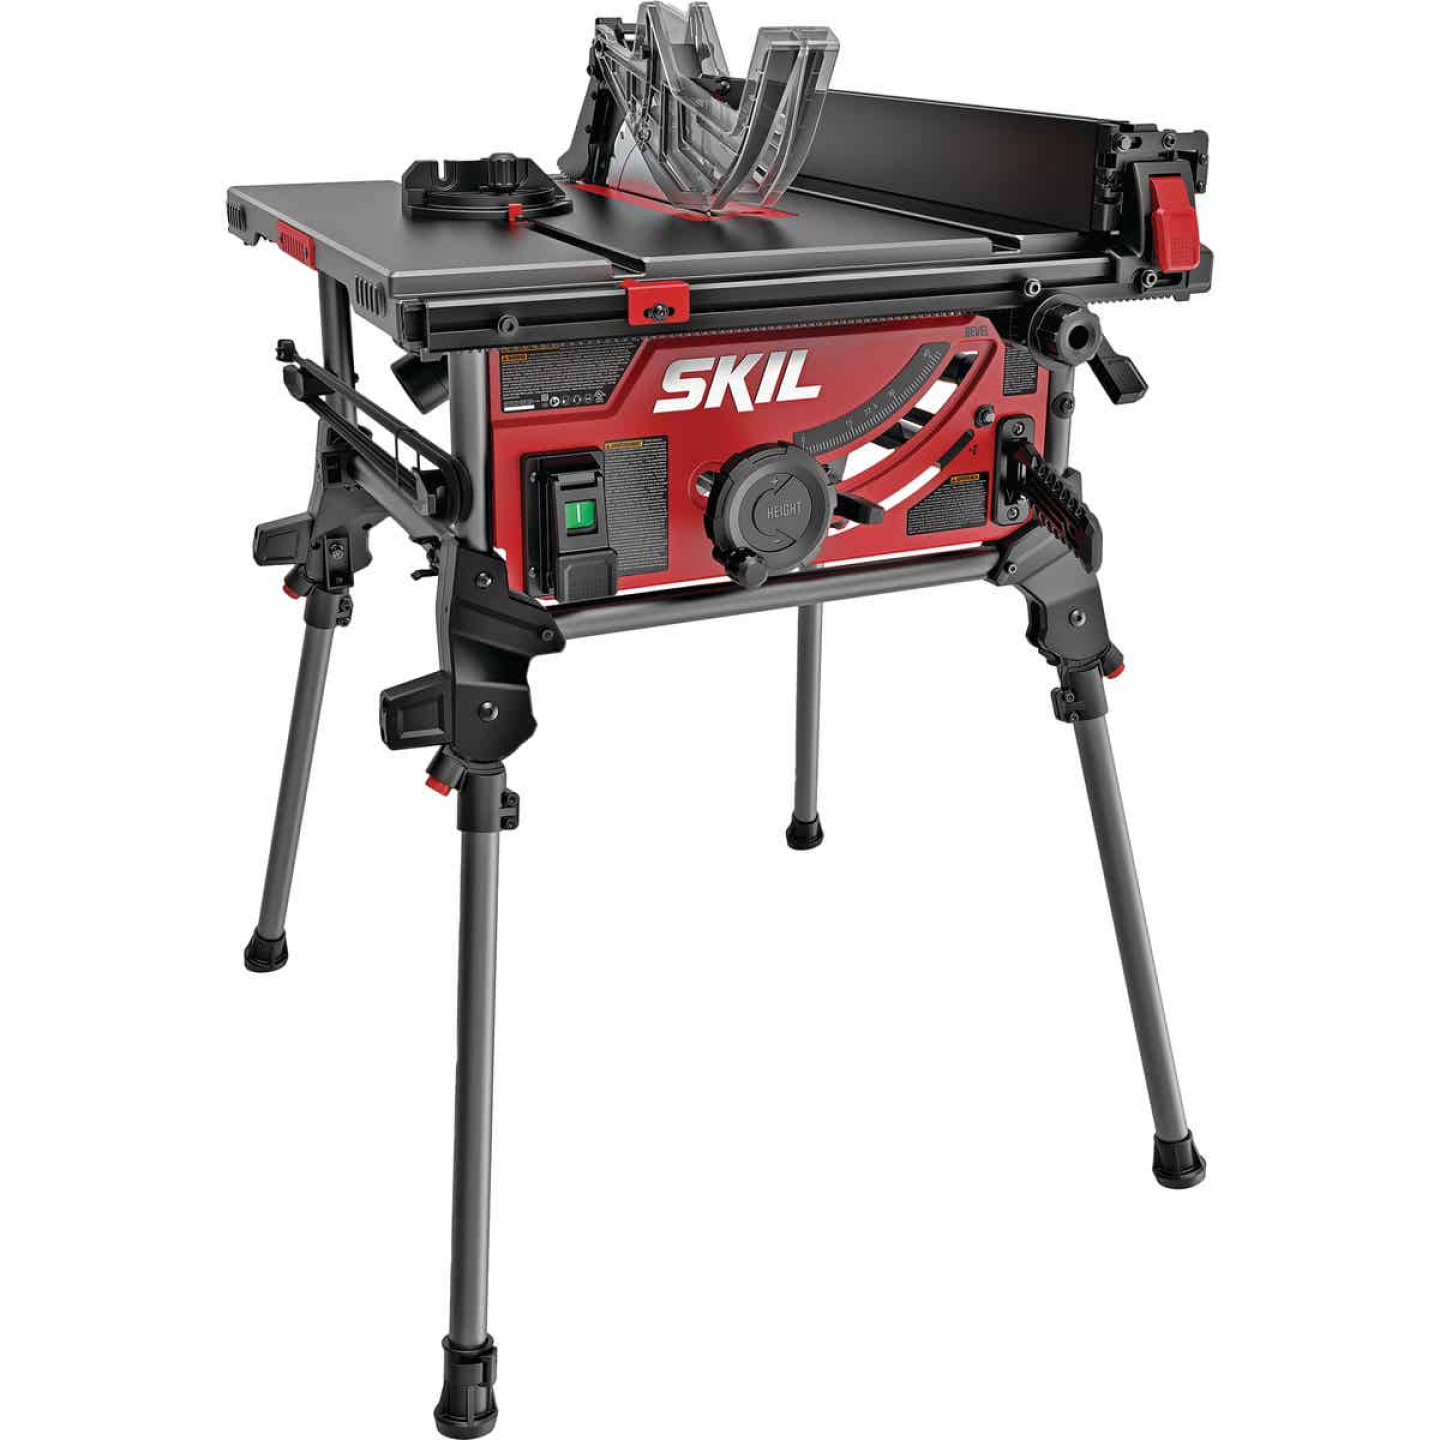 SKIL 15A 10 In. Table Saw with Integrated Folding Stand Image 1